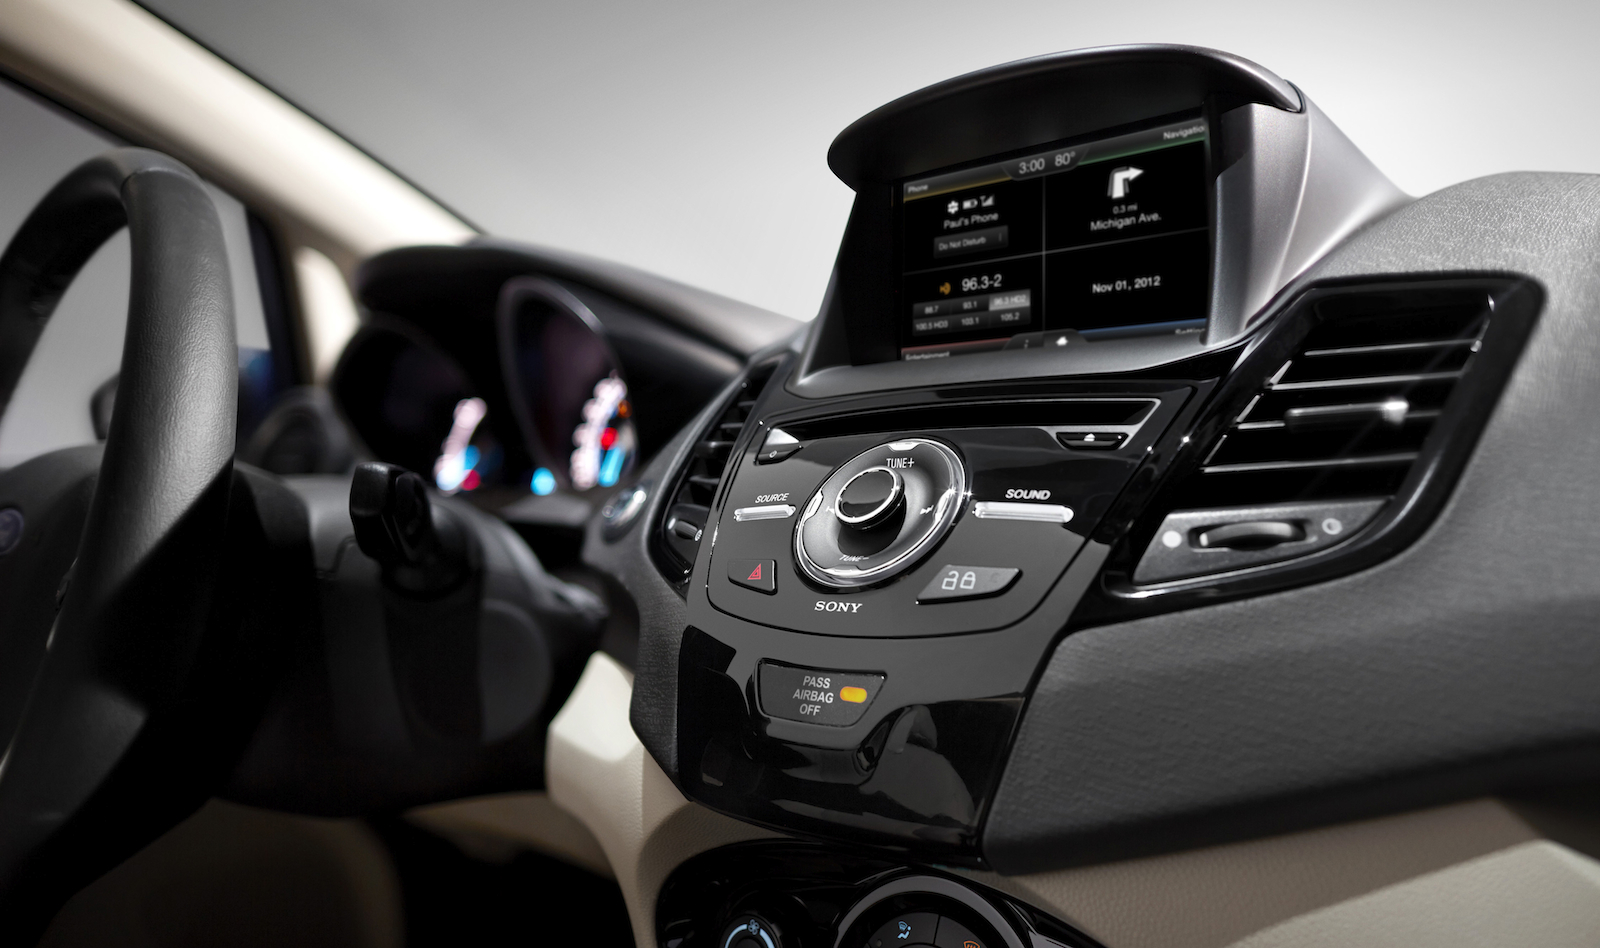 2014 Ford Fiesta Gets The MyFord Touch Infotainment System